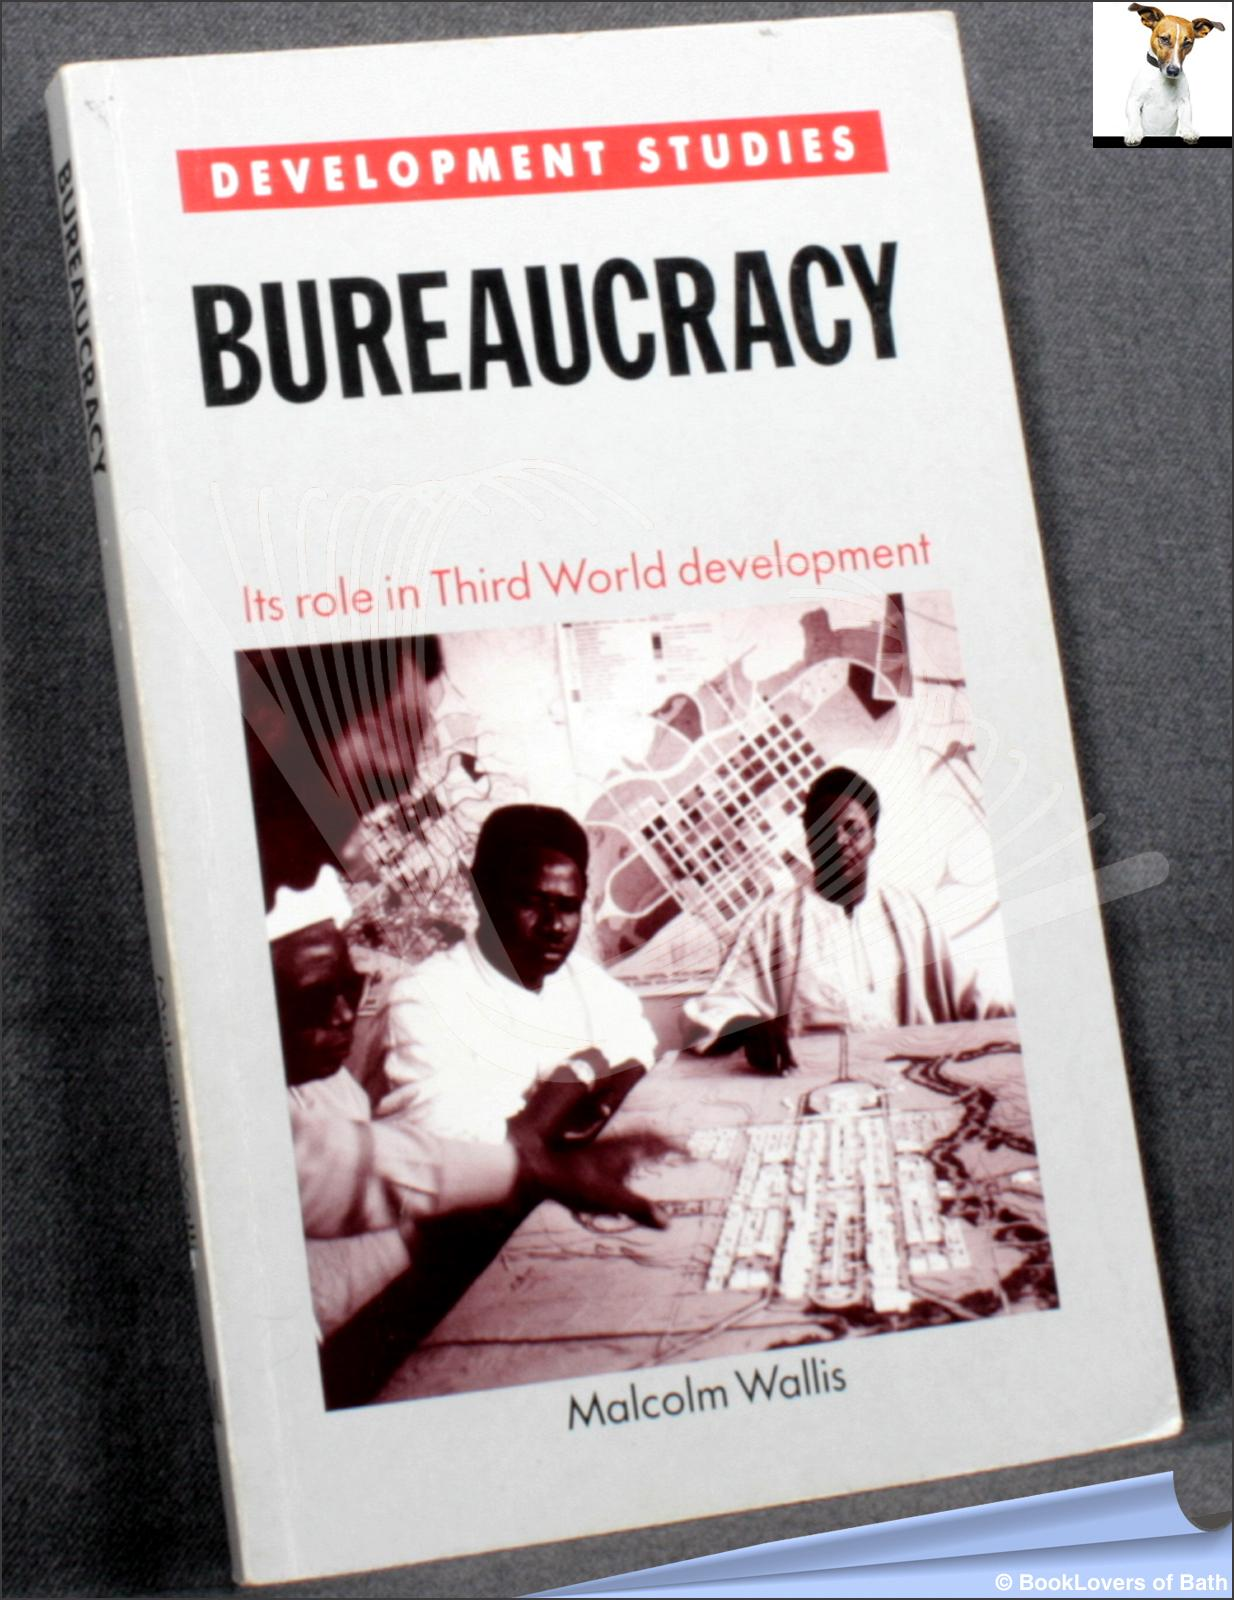 Bureaucracy: Its Role in Third World Development - Malcolm Wallis